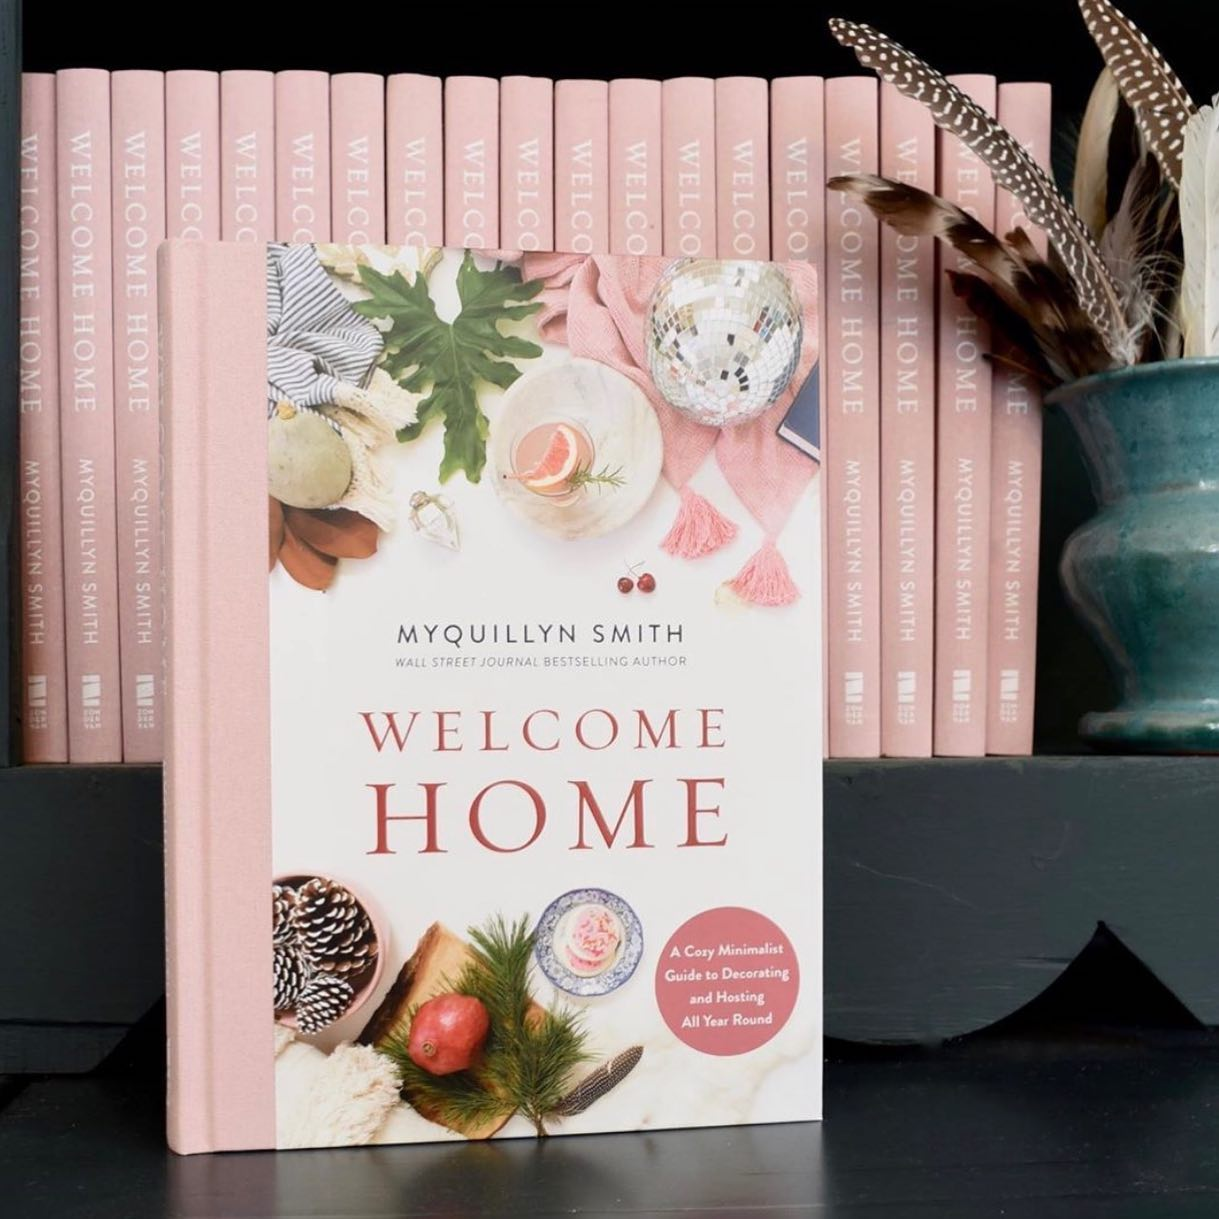 copy of myquillyn's book welcome home in front of multiple other copies